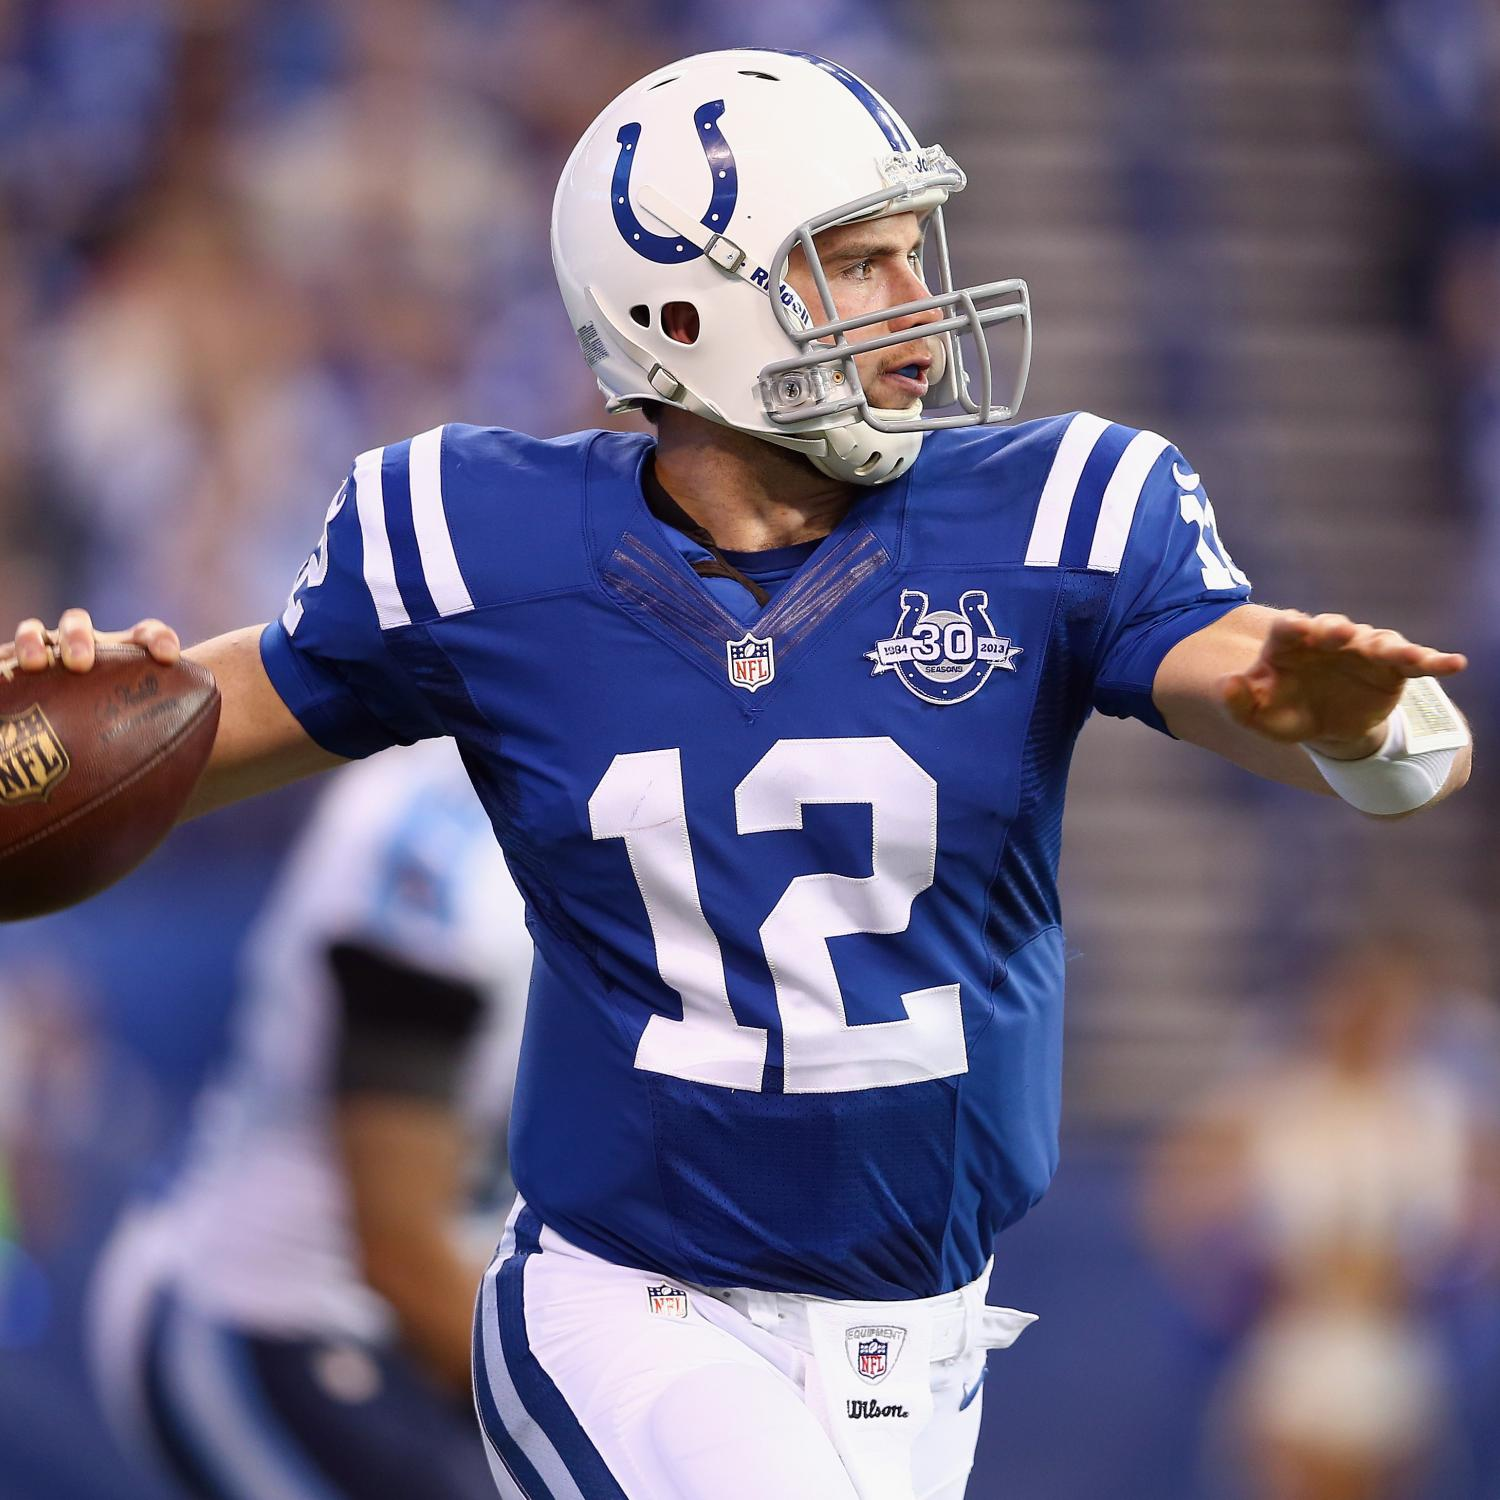 Indianapolis Colts: Quarterback Andrew Luck